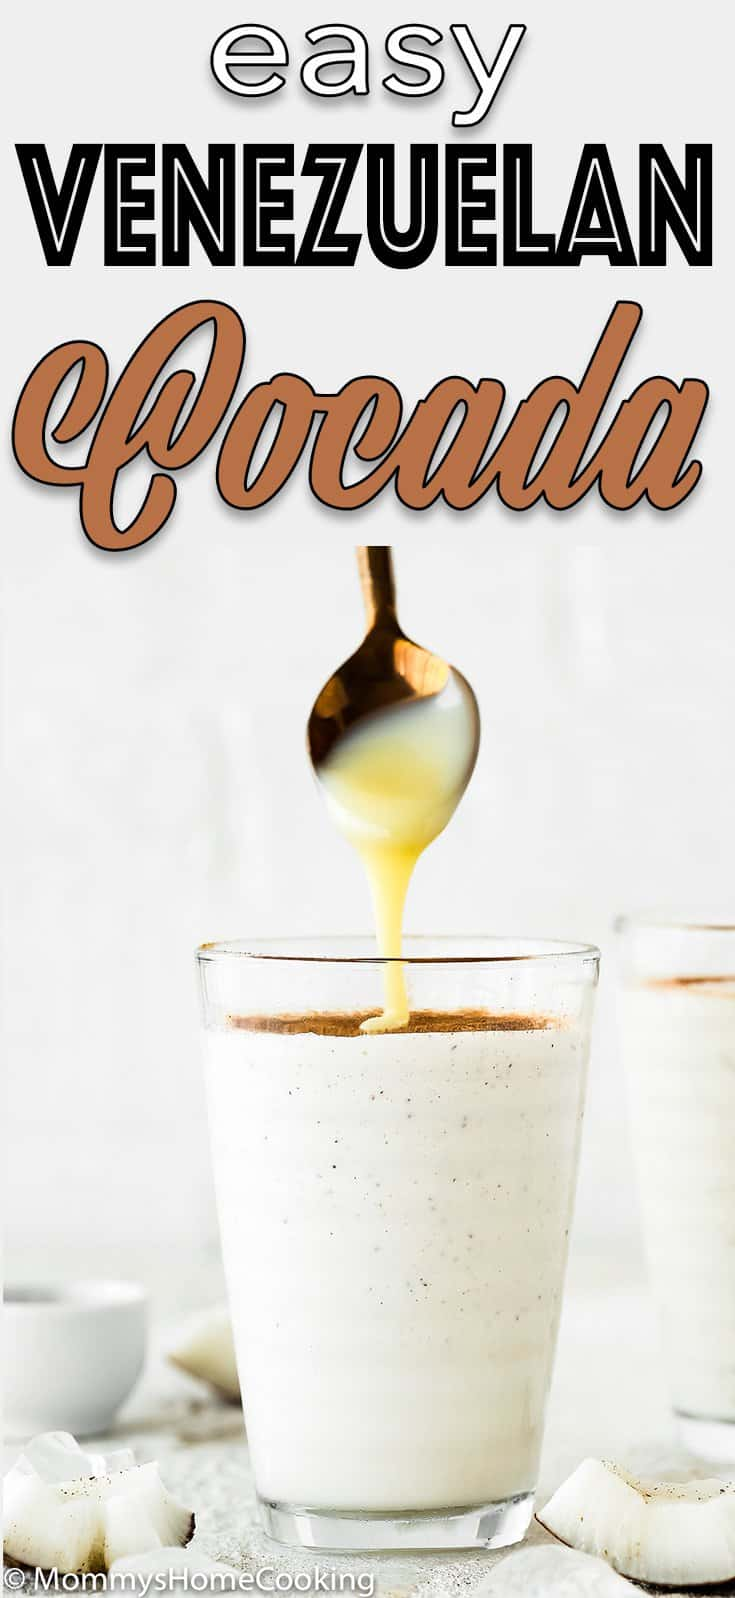 Venezuelan Cocada drink in a glass drizzled with sweetened condensed milk with descriptive text